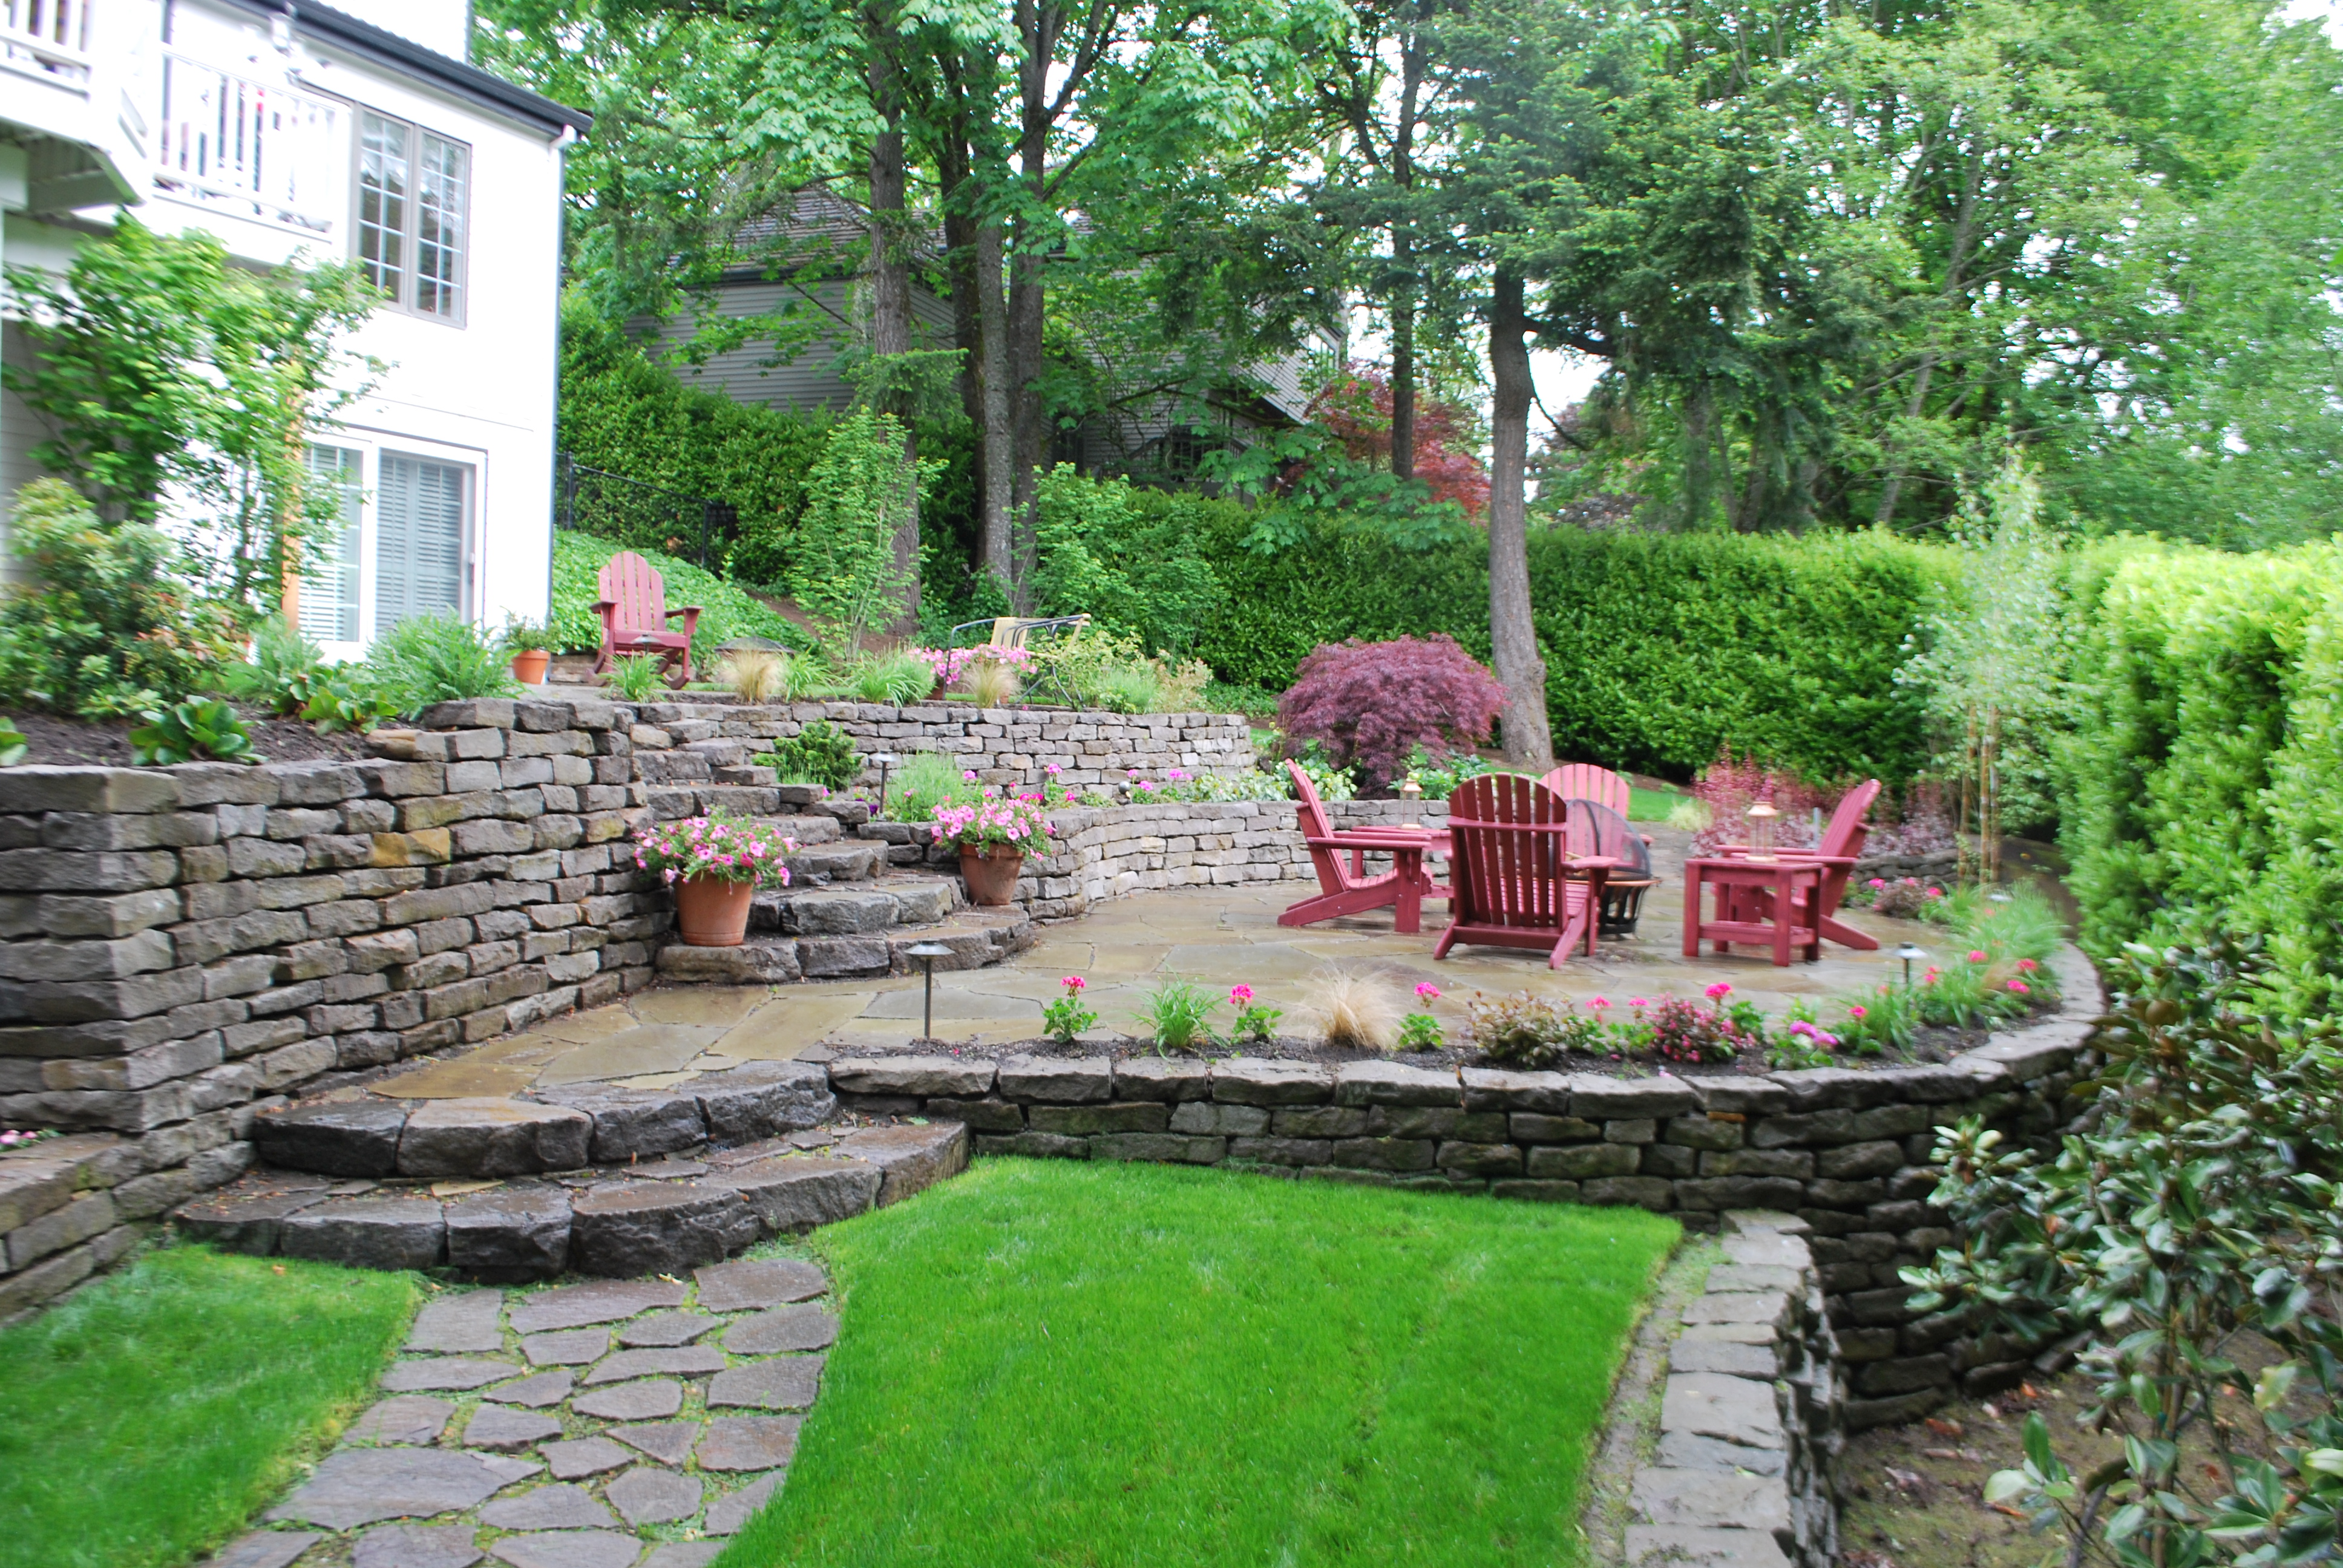 Unique Landscape Design Challenge Results in a Beautiful ... on Sloped Backyard Design id=54999